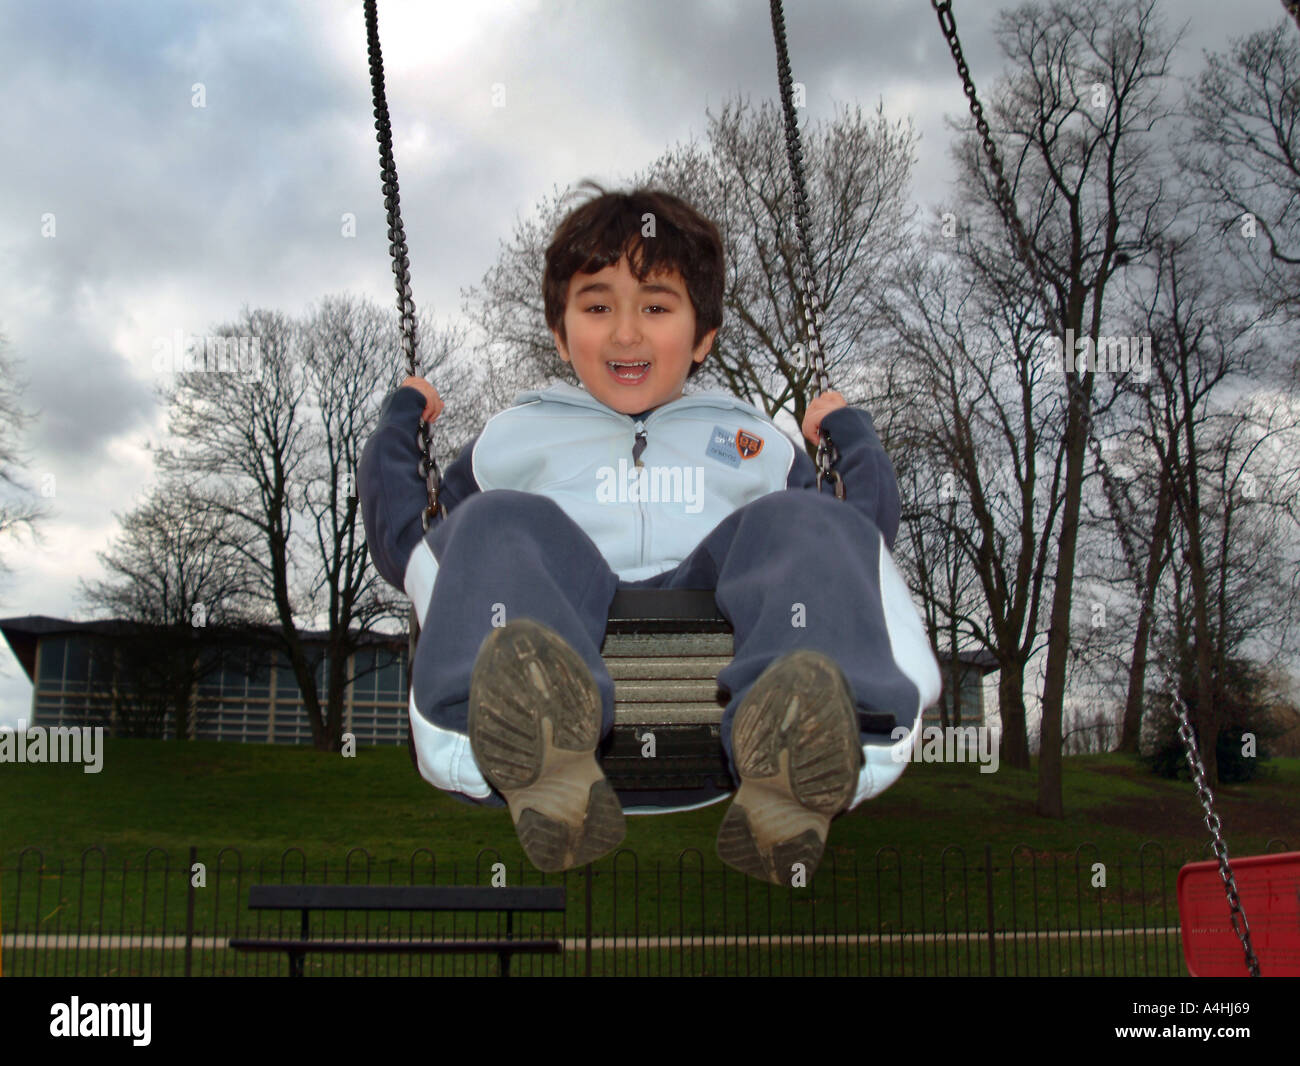 PUPIL SWINGING - Stock Image